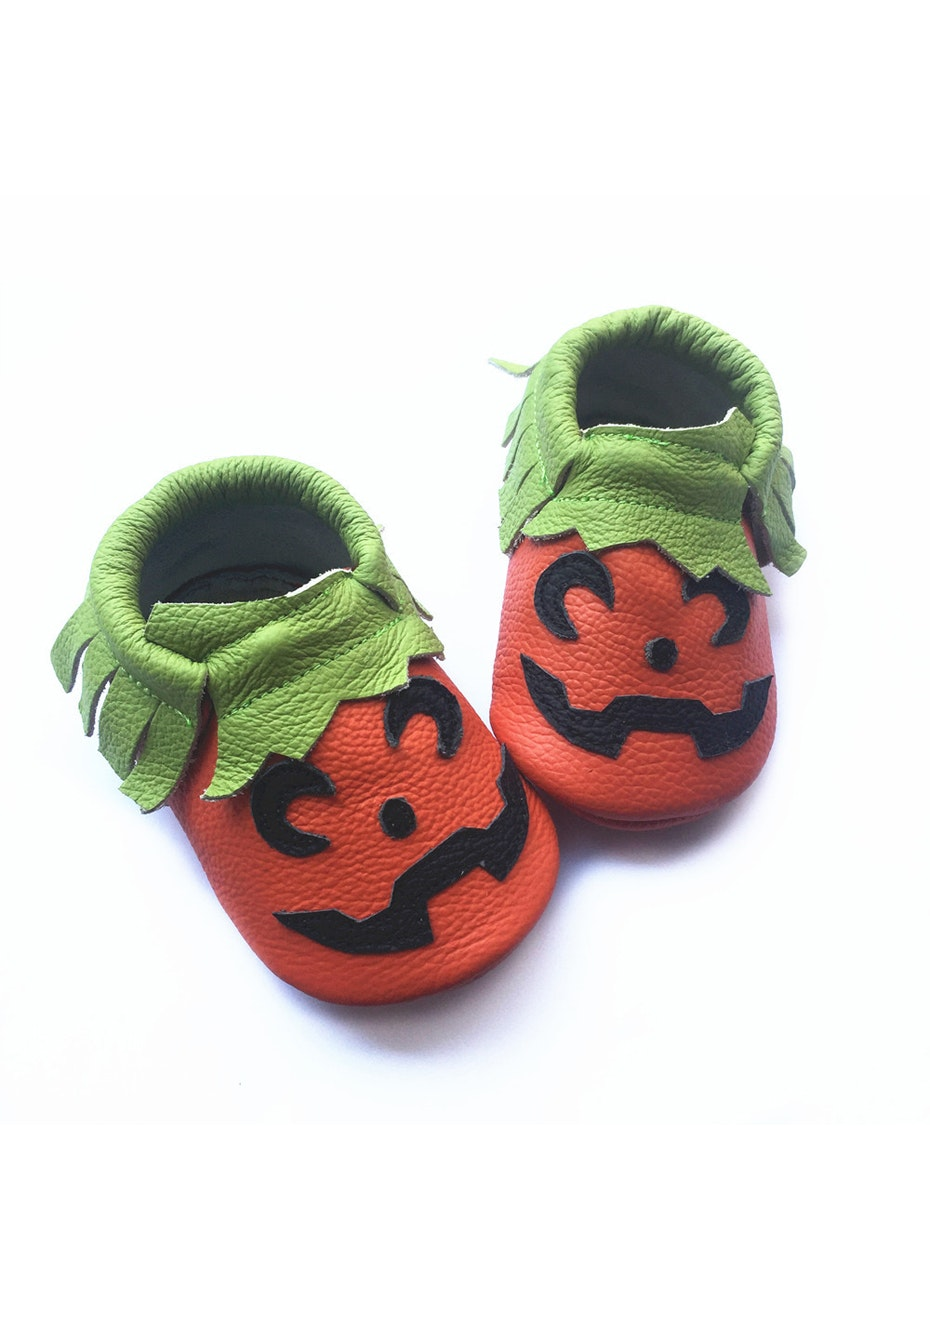 Baby  Leather Shoes - Pumkin / Green